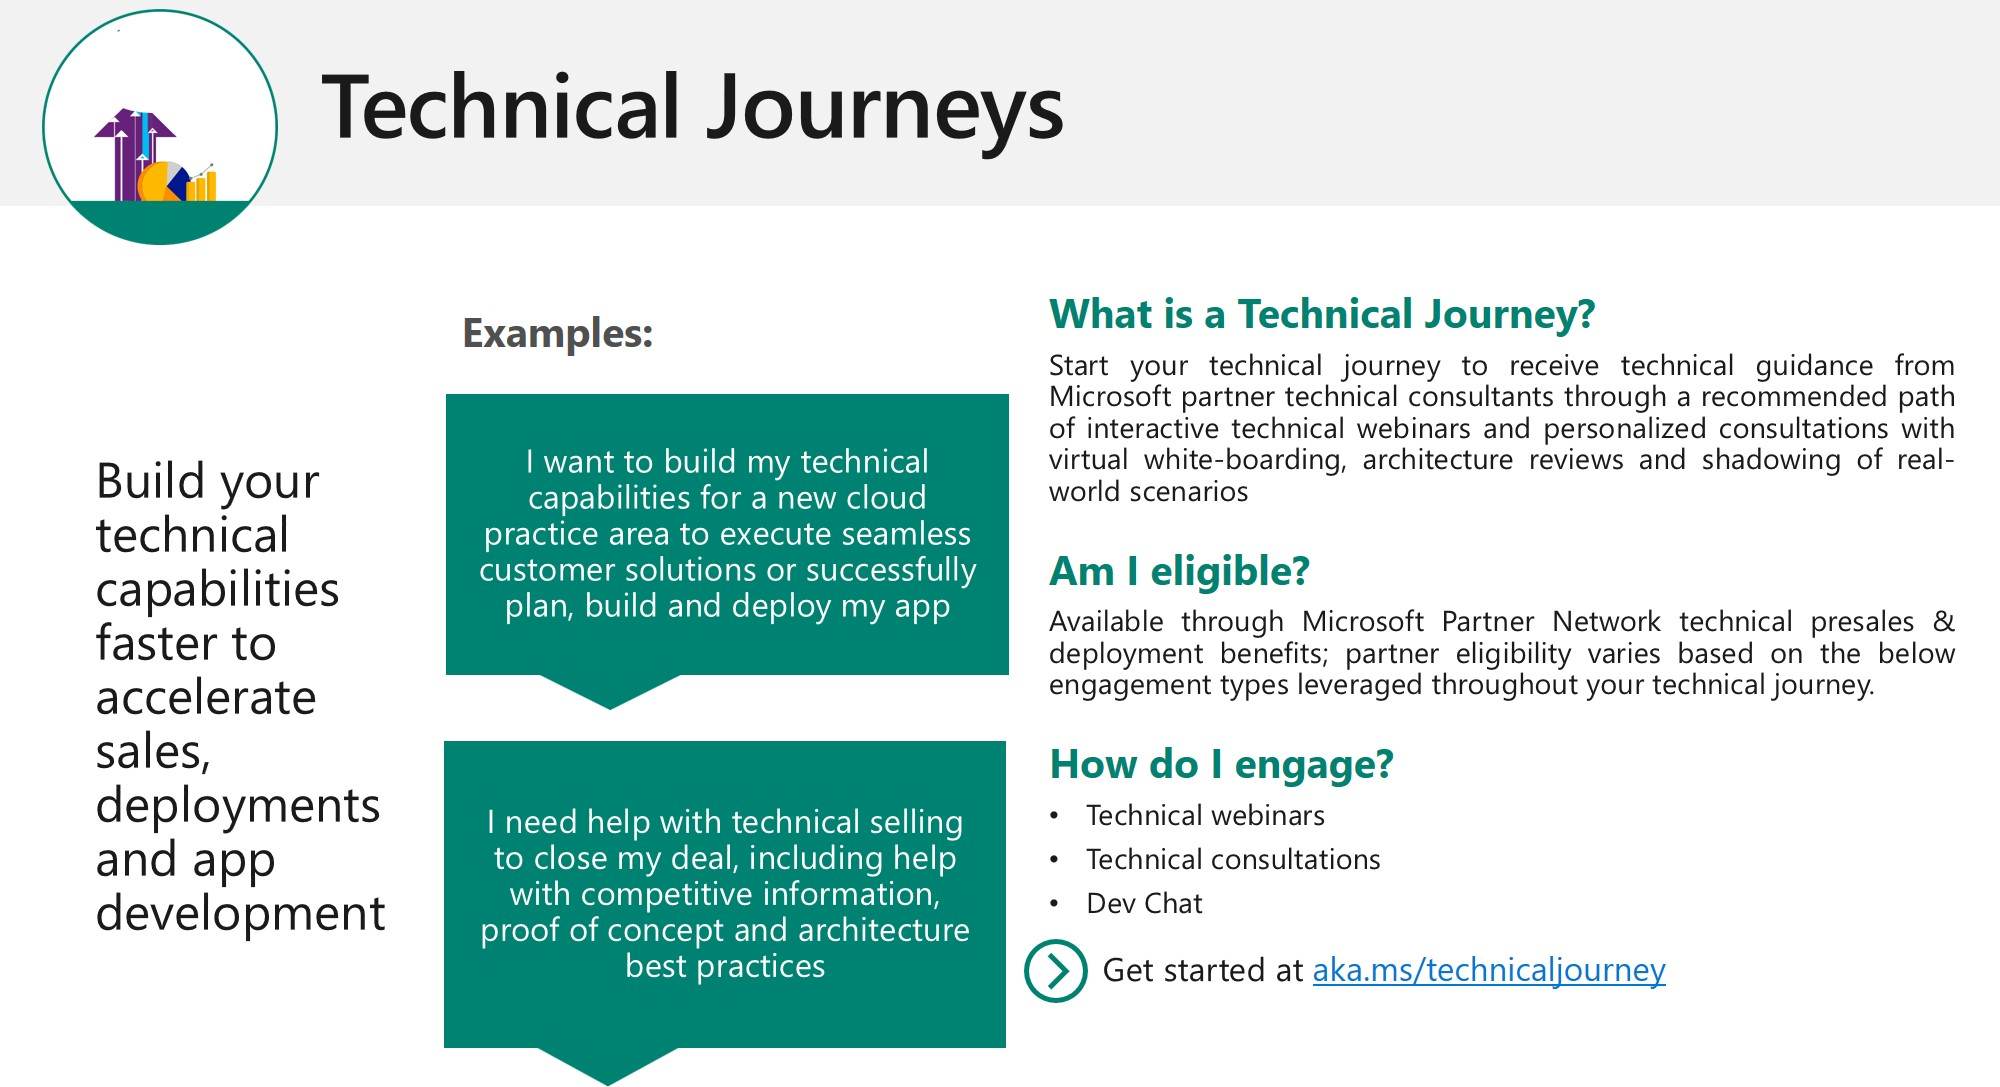 Technical journeys available for Microsot partners